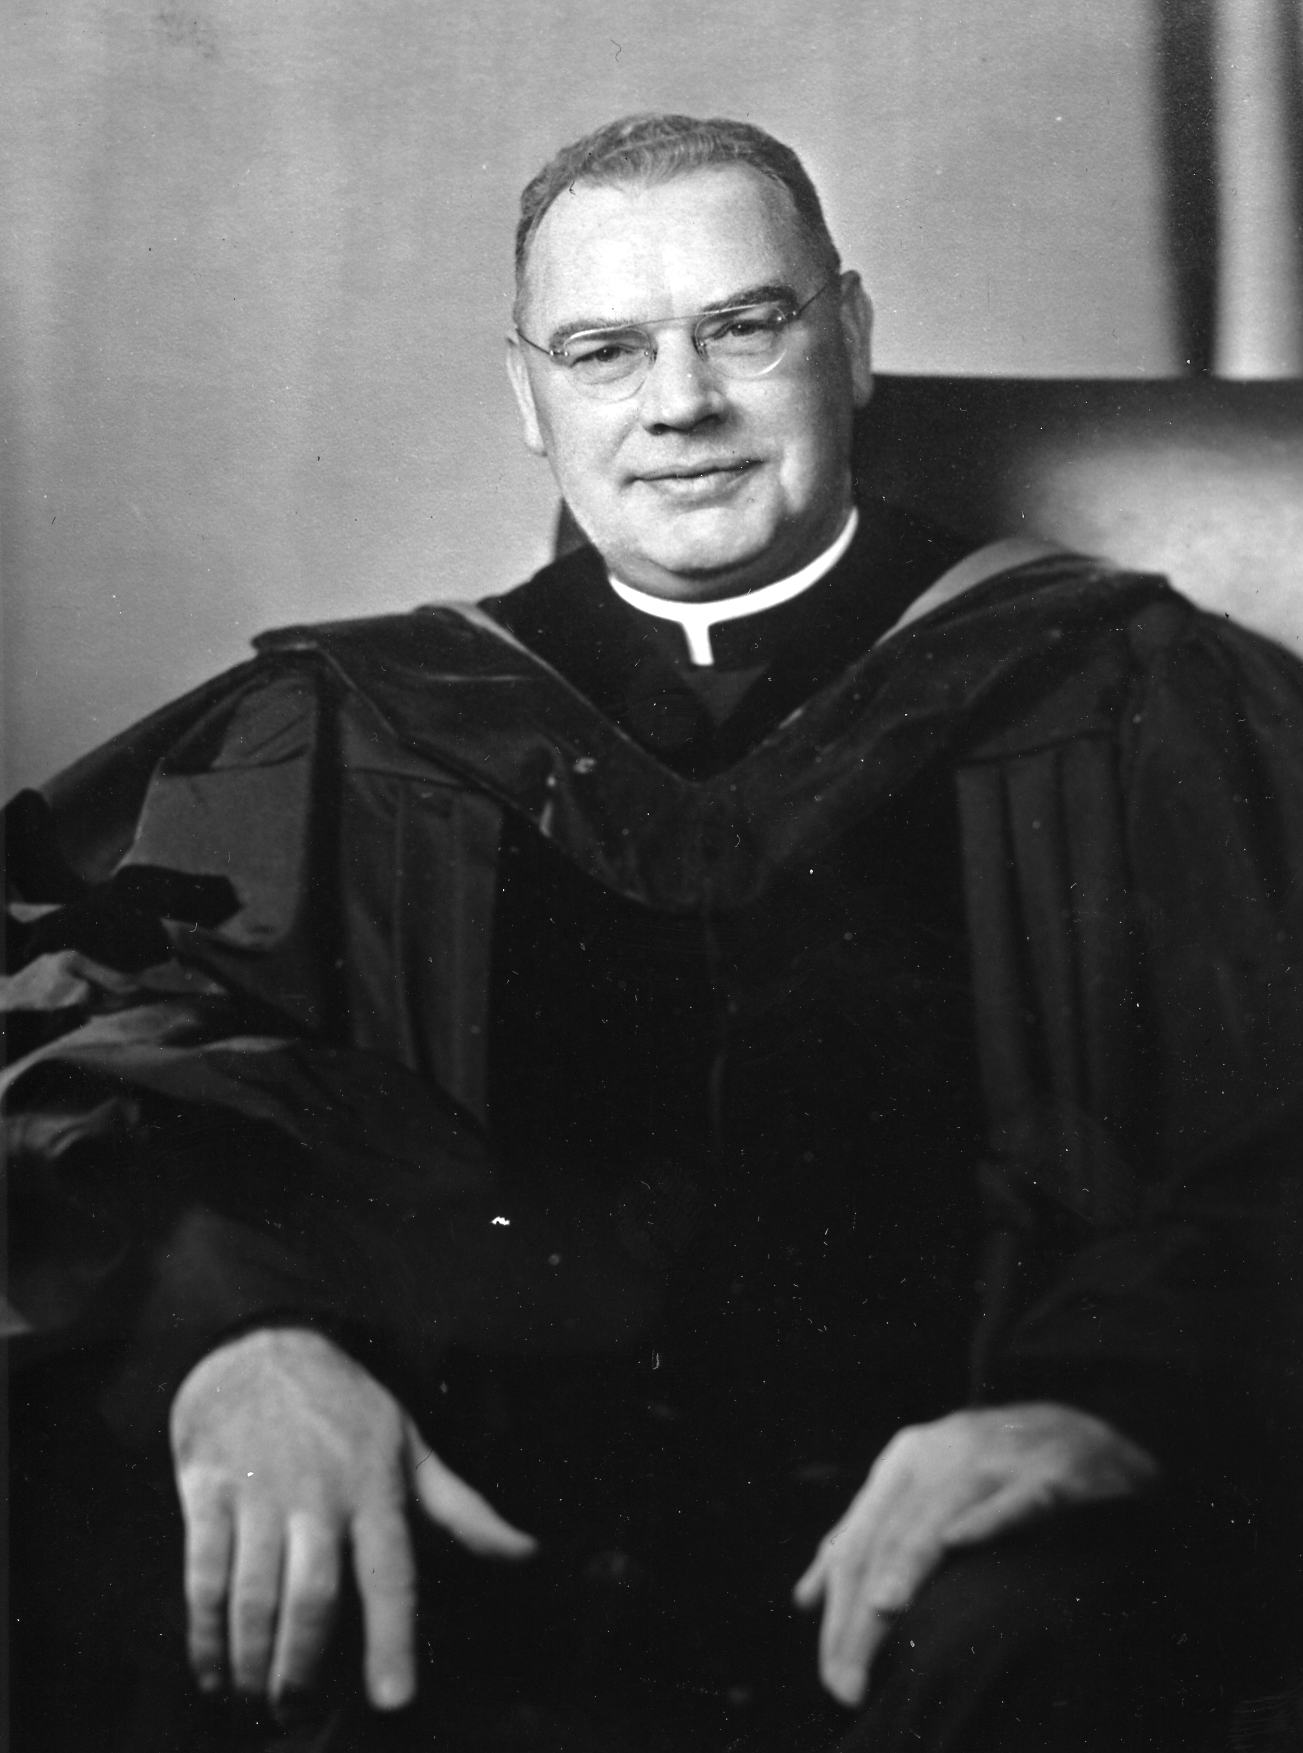 Reverend James A. Donnellon, O.S.A., Ph.D.